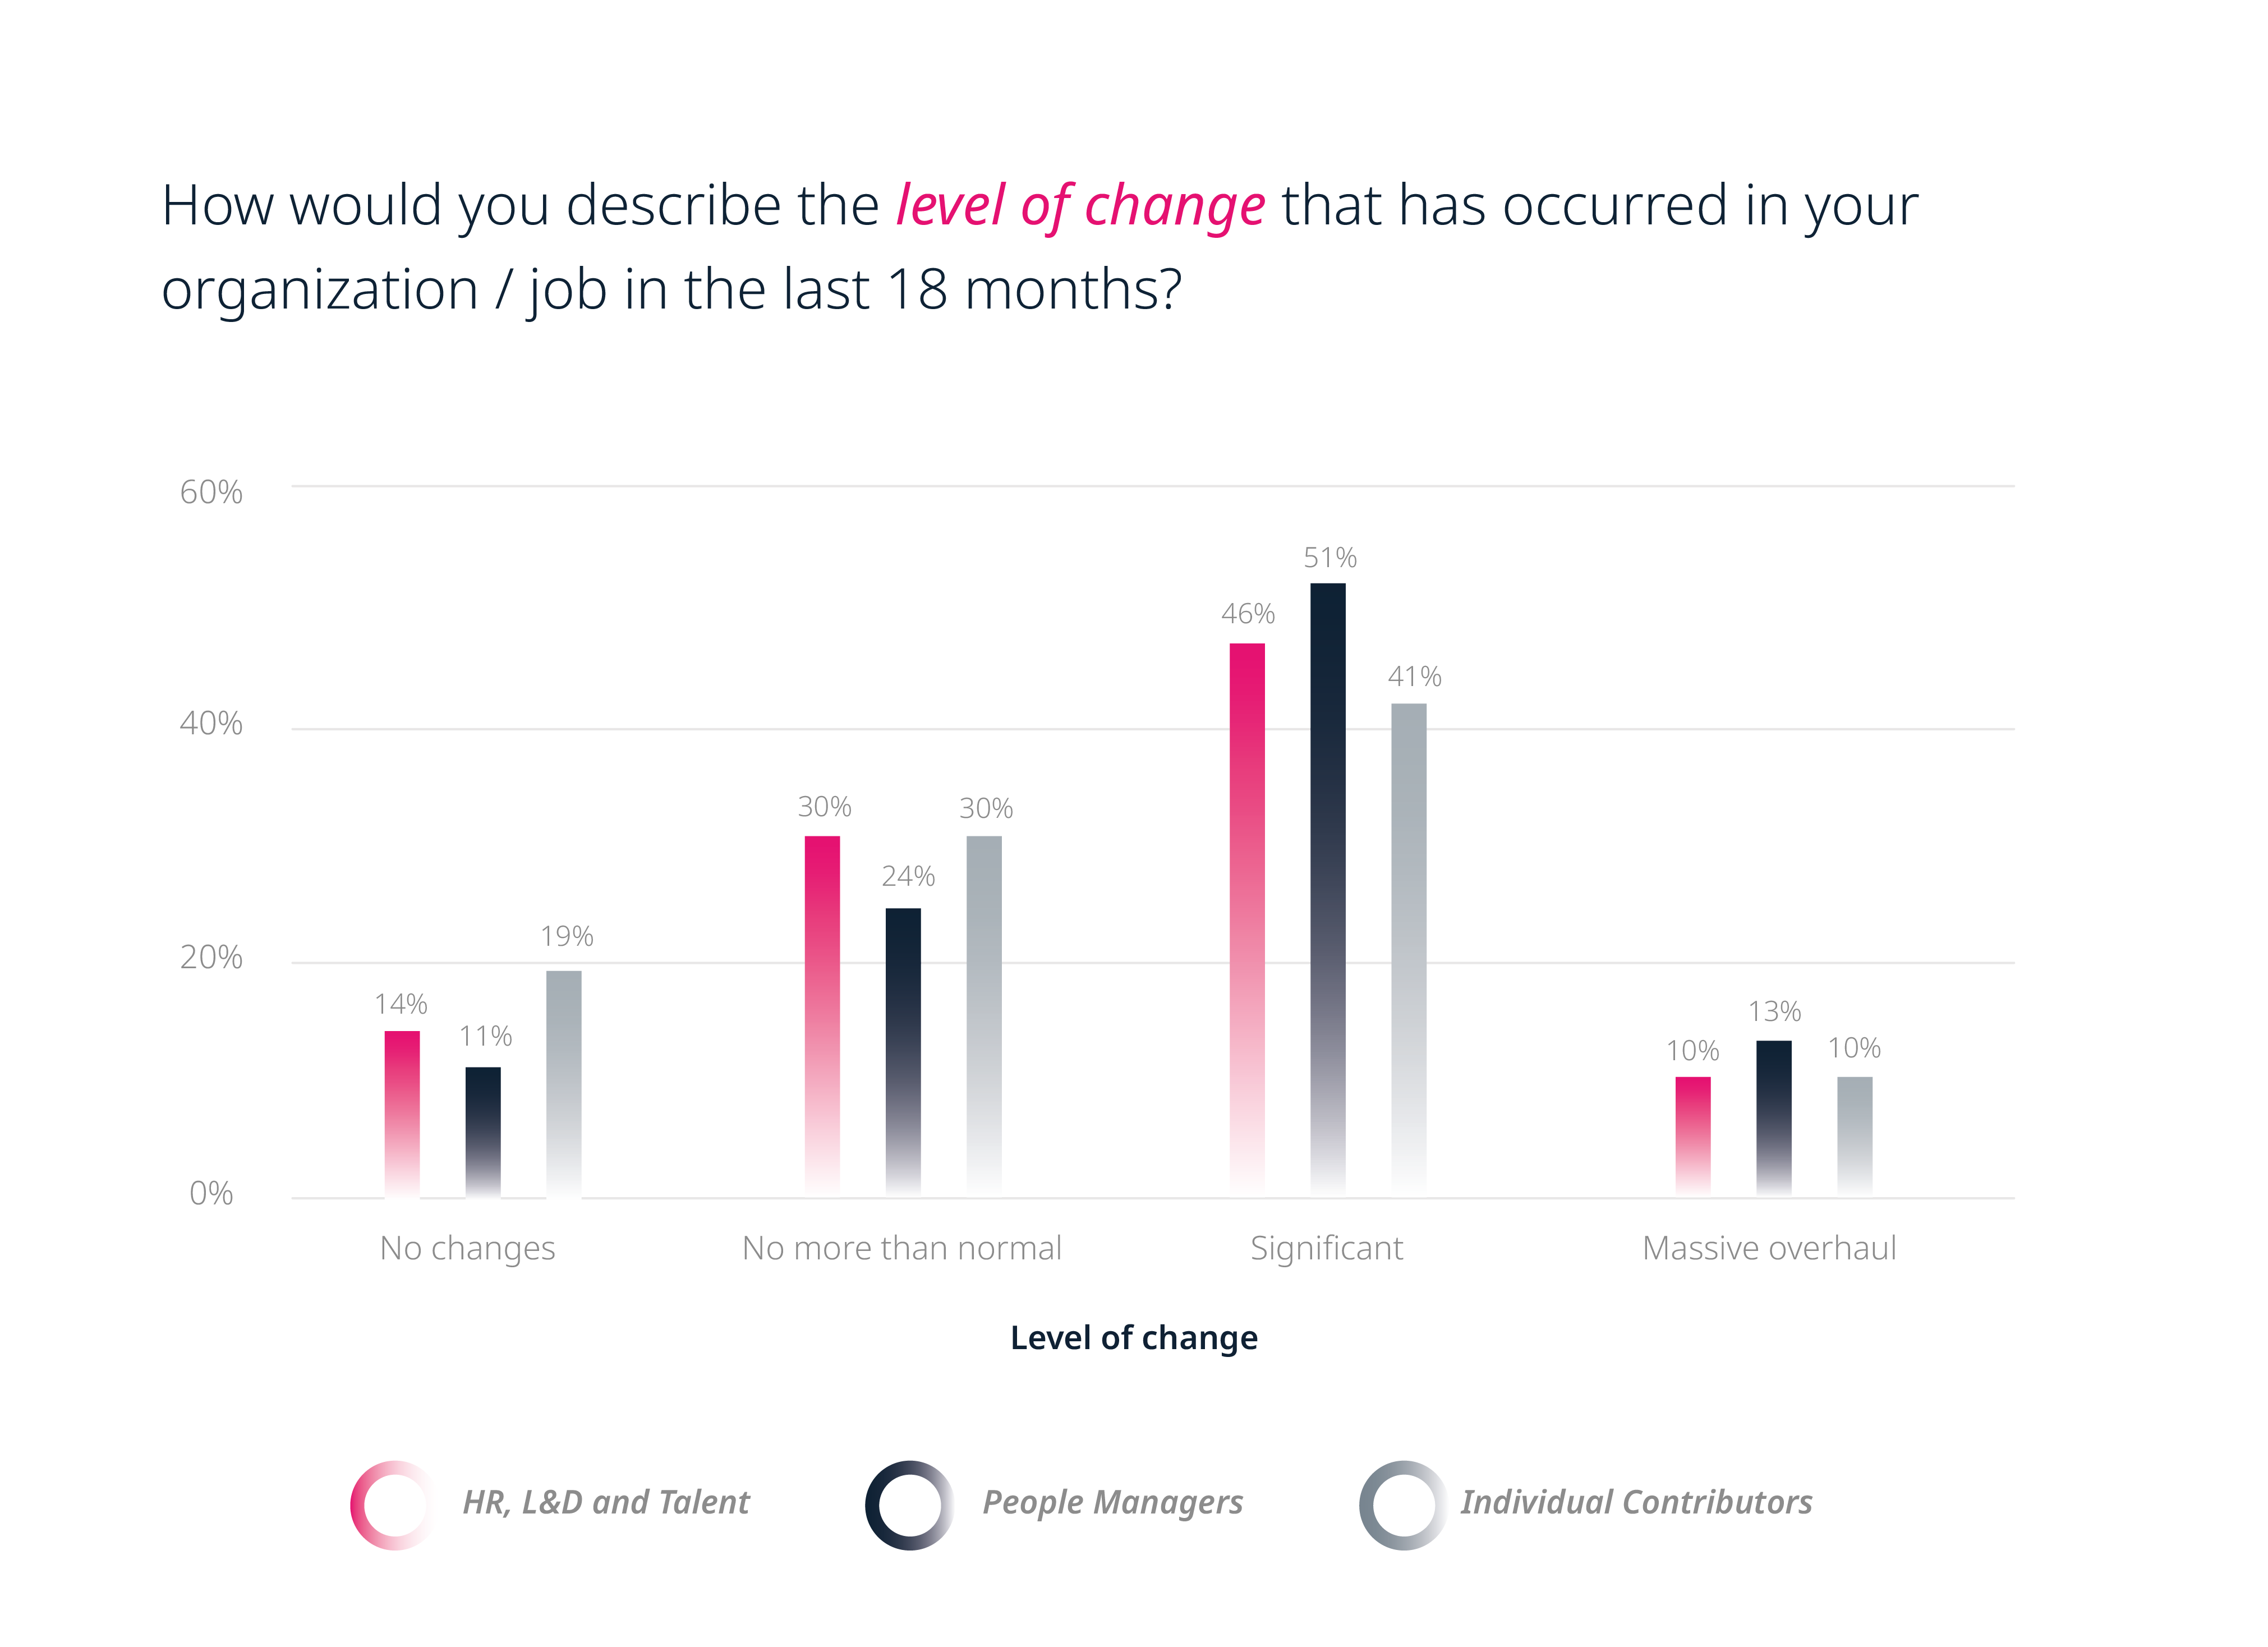 The level of change that has occured in organizations / jobs in the last 18 months